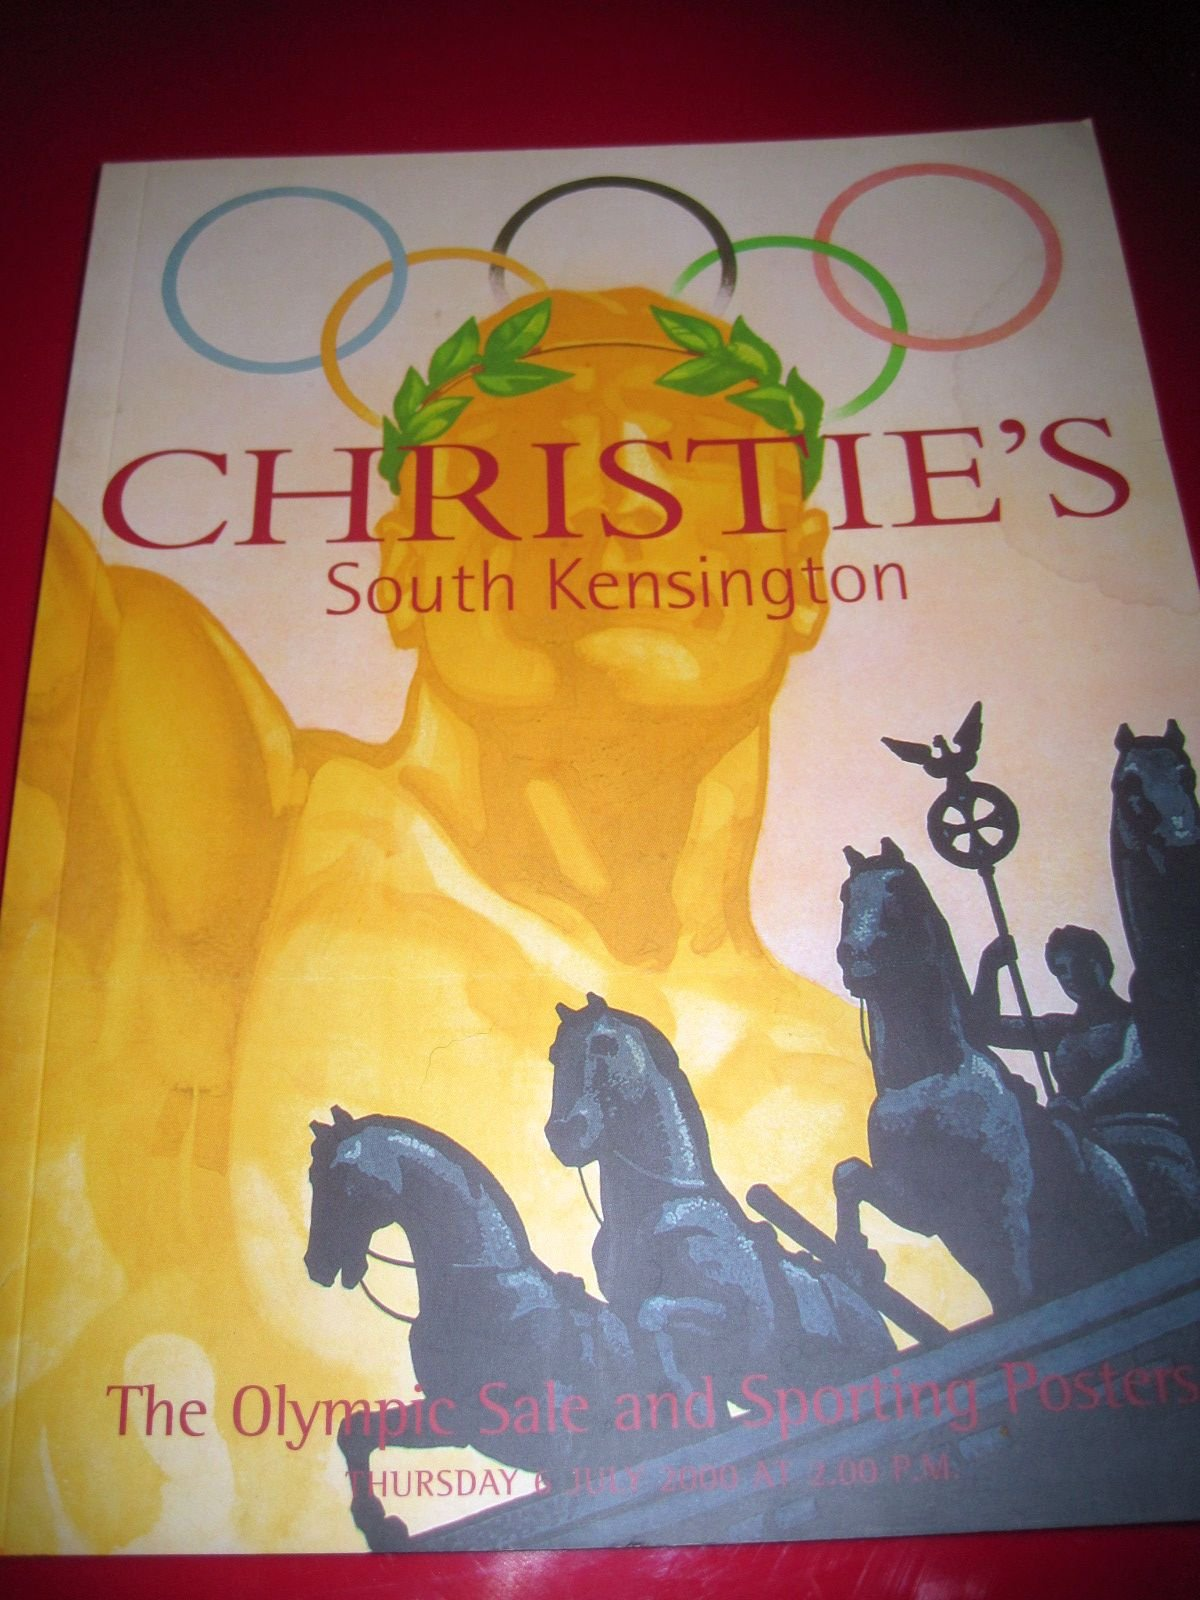 Christie's Auction Catalog The Olympic Sale and Sporting Posters (July 6, 2000 South Kensington) PDF